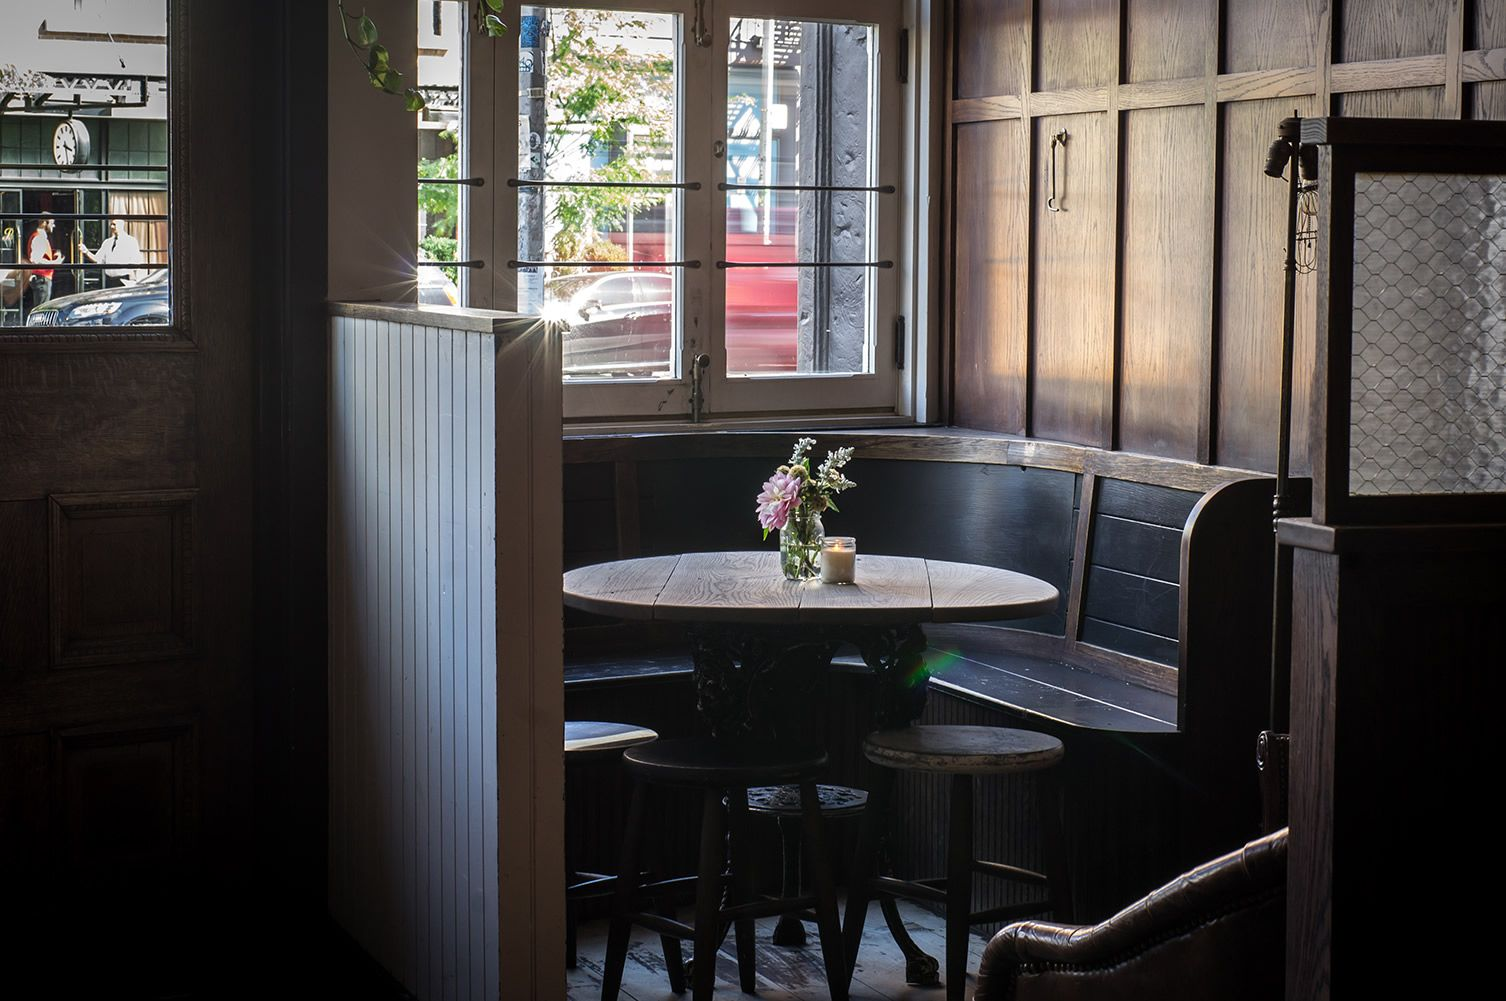 Gastropub The Wren Sings A Song Of Rural Ireland In The